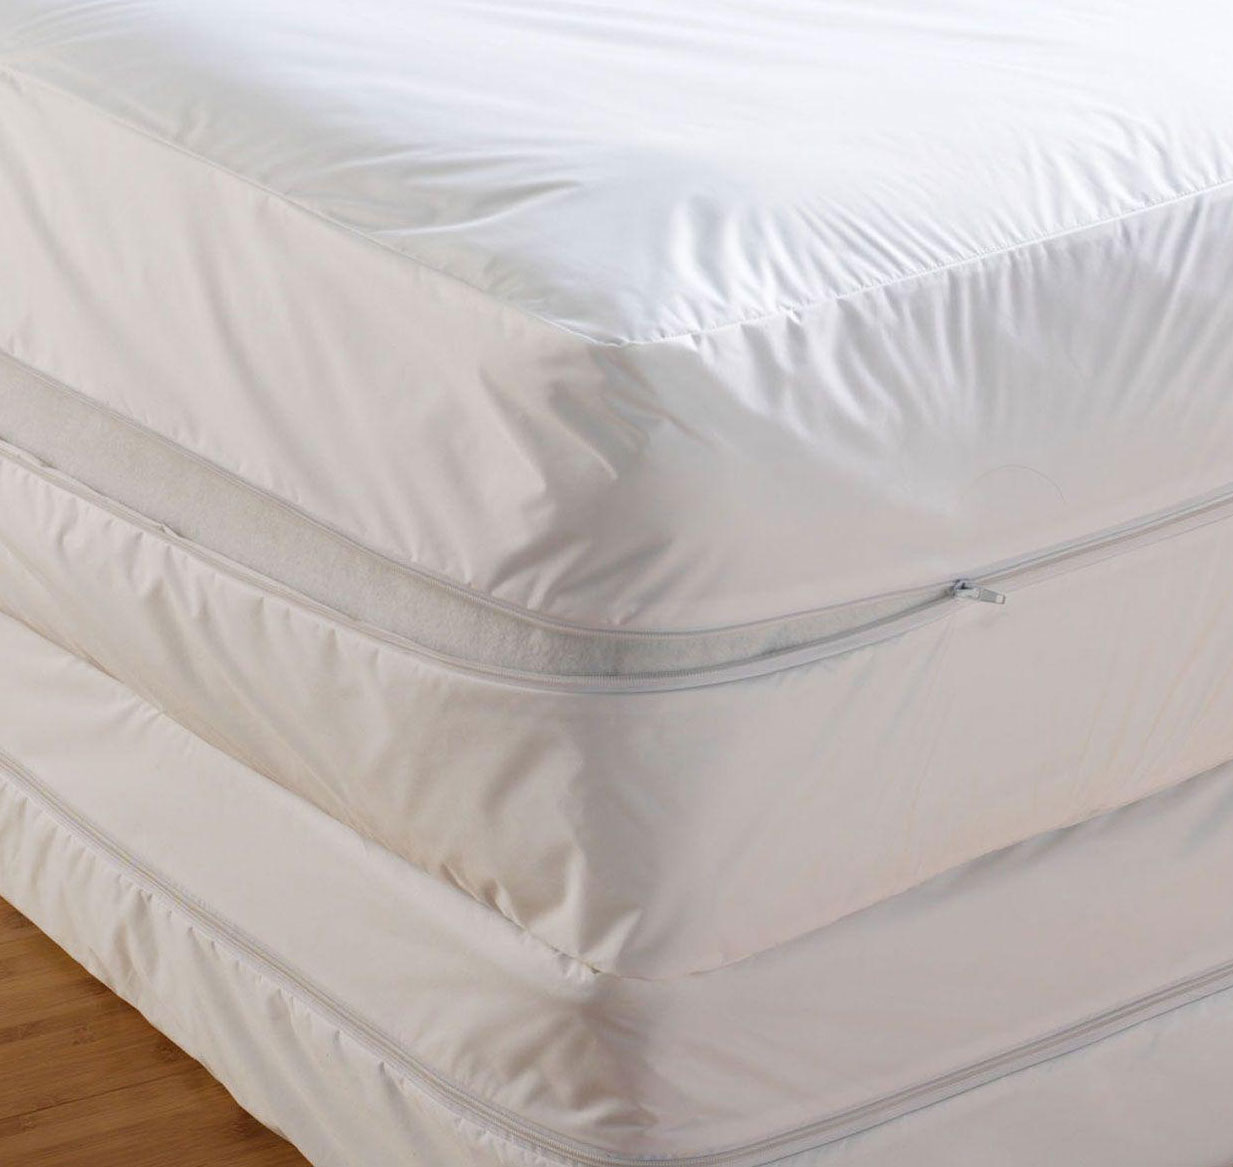 Bed Bug Proof Cover Bedding And Covers Archives Let S Talk Allergies